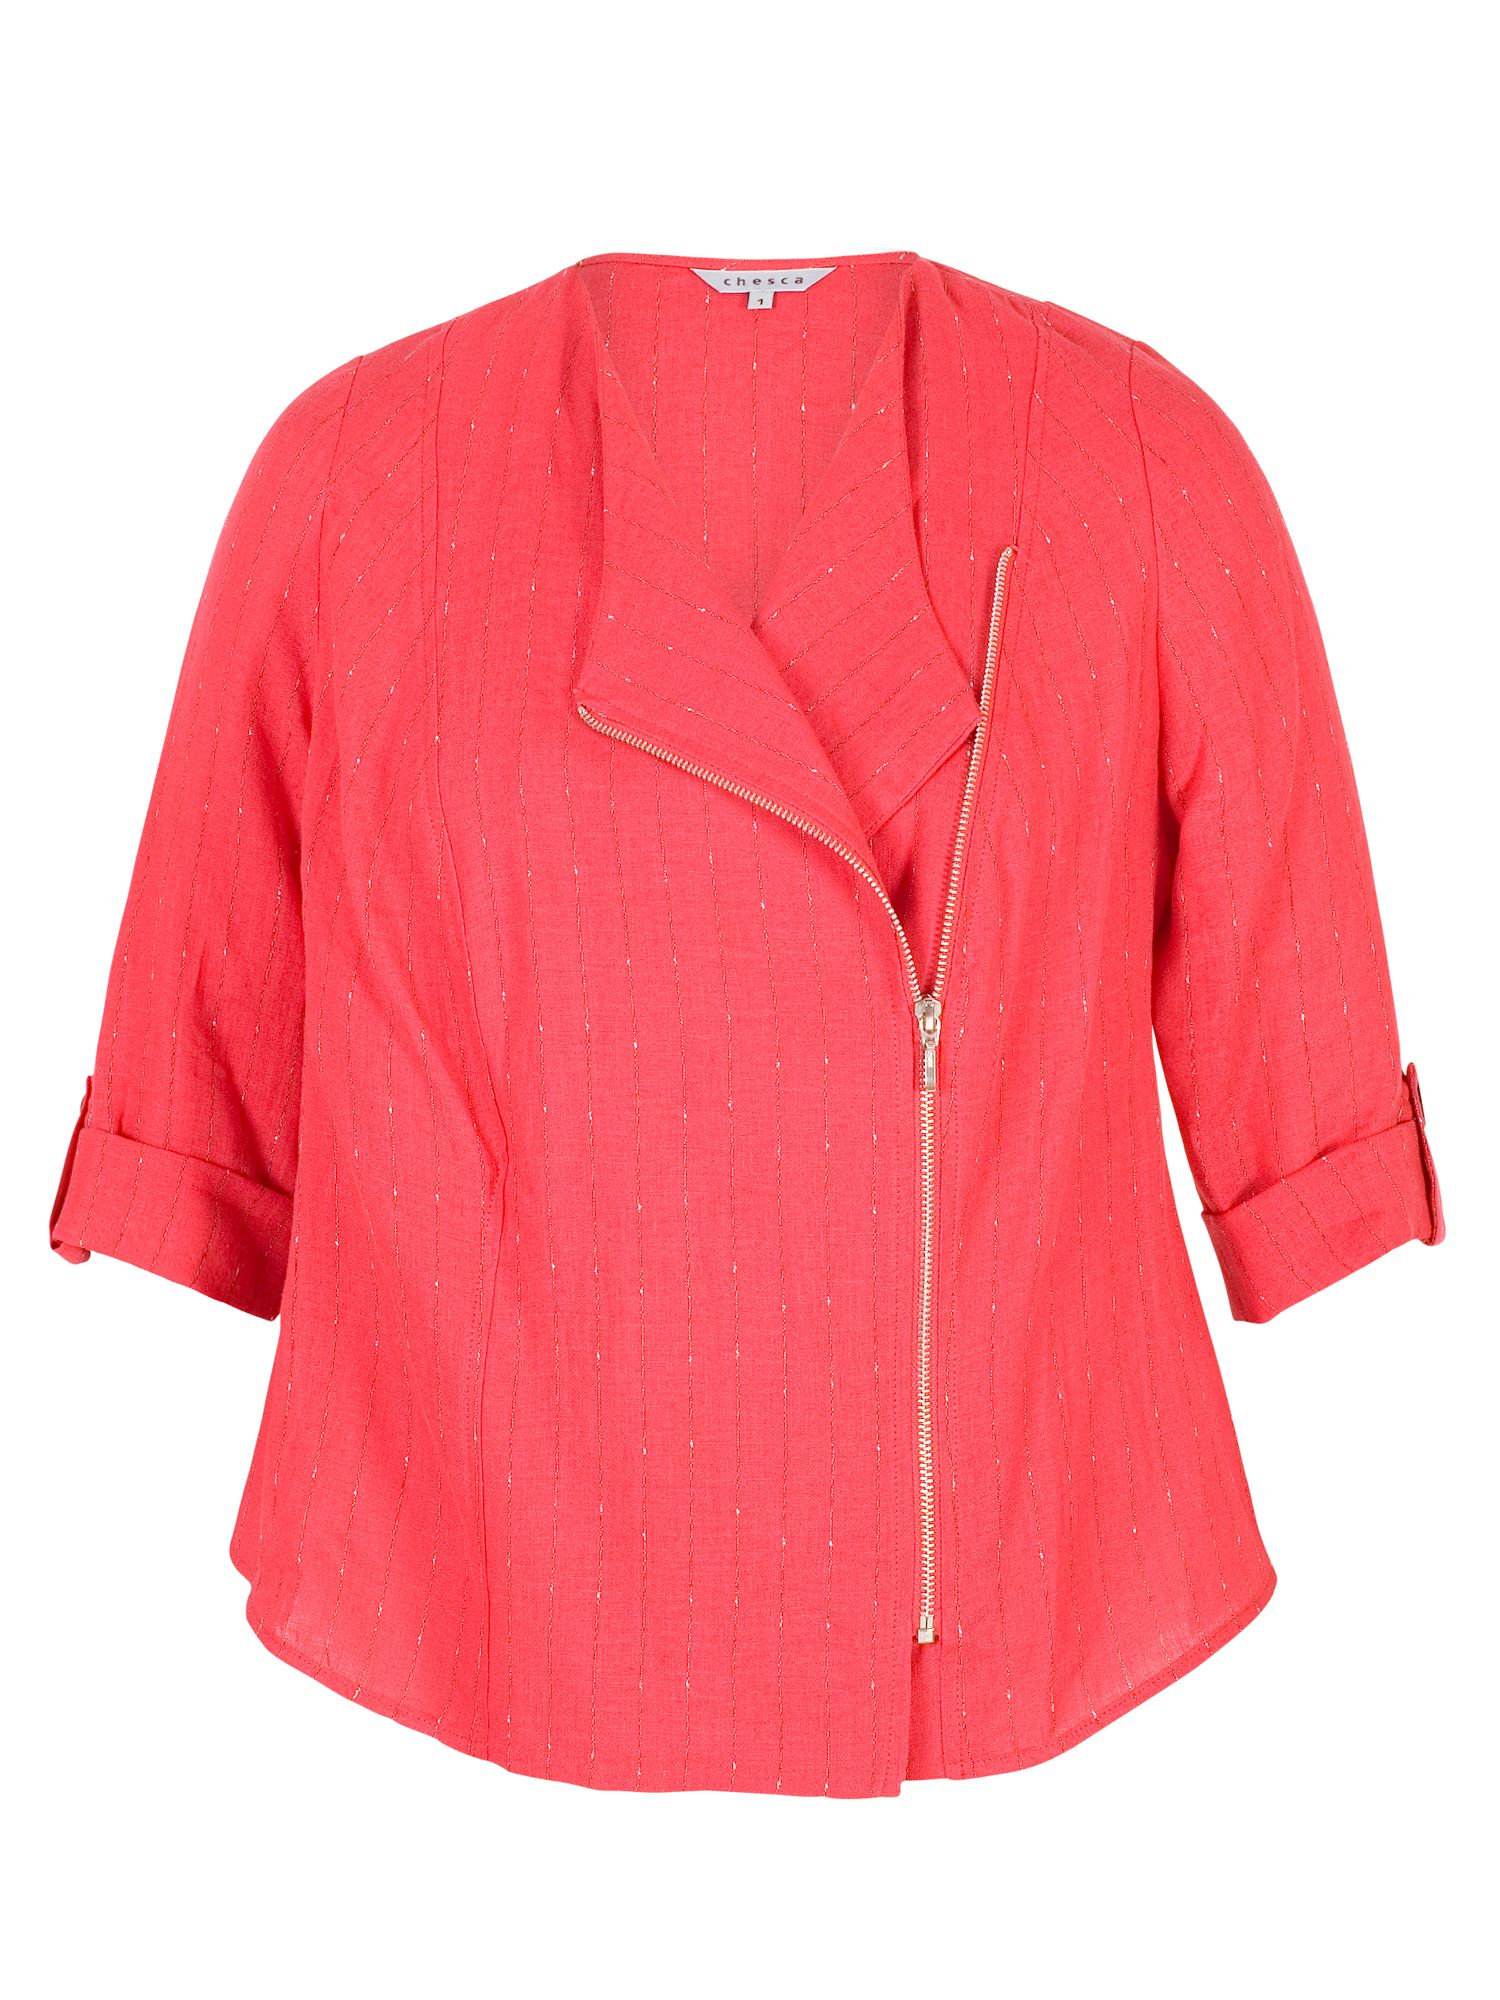 Chesca Tab Trim Pinstripe Linen Zip Jacket, Red